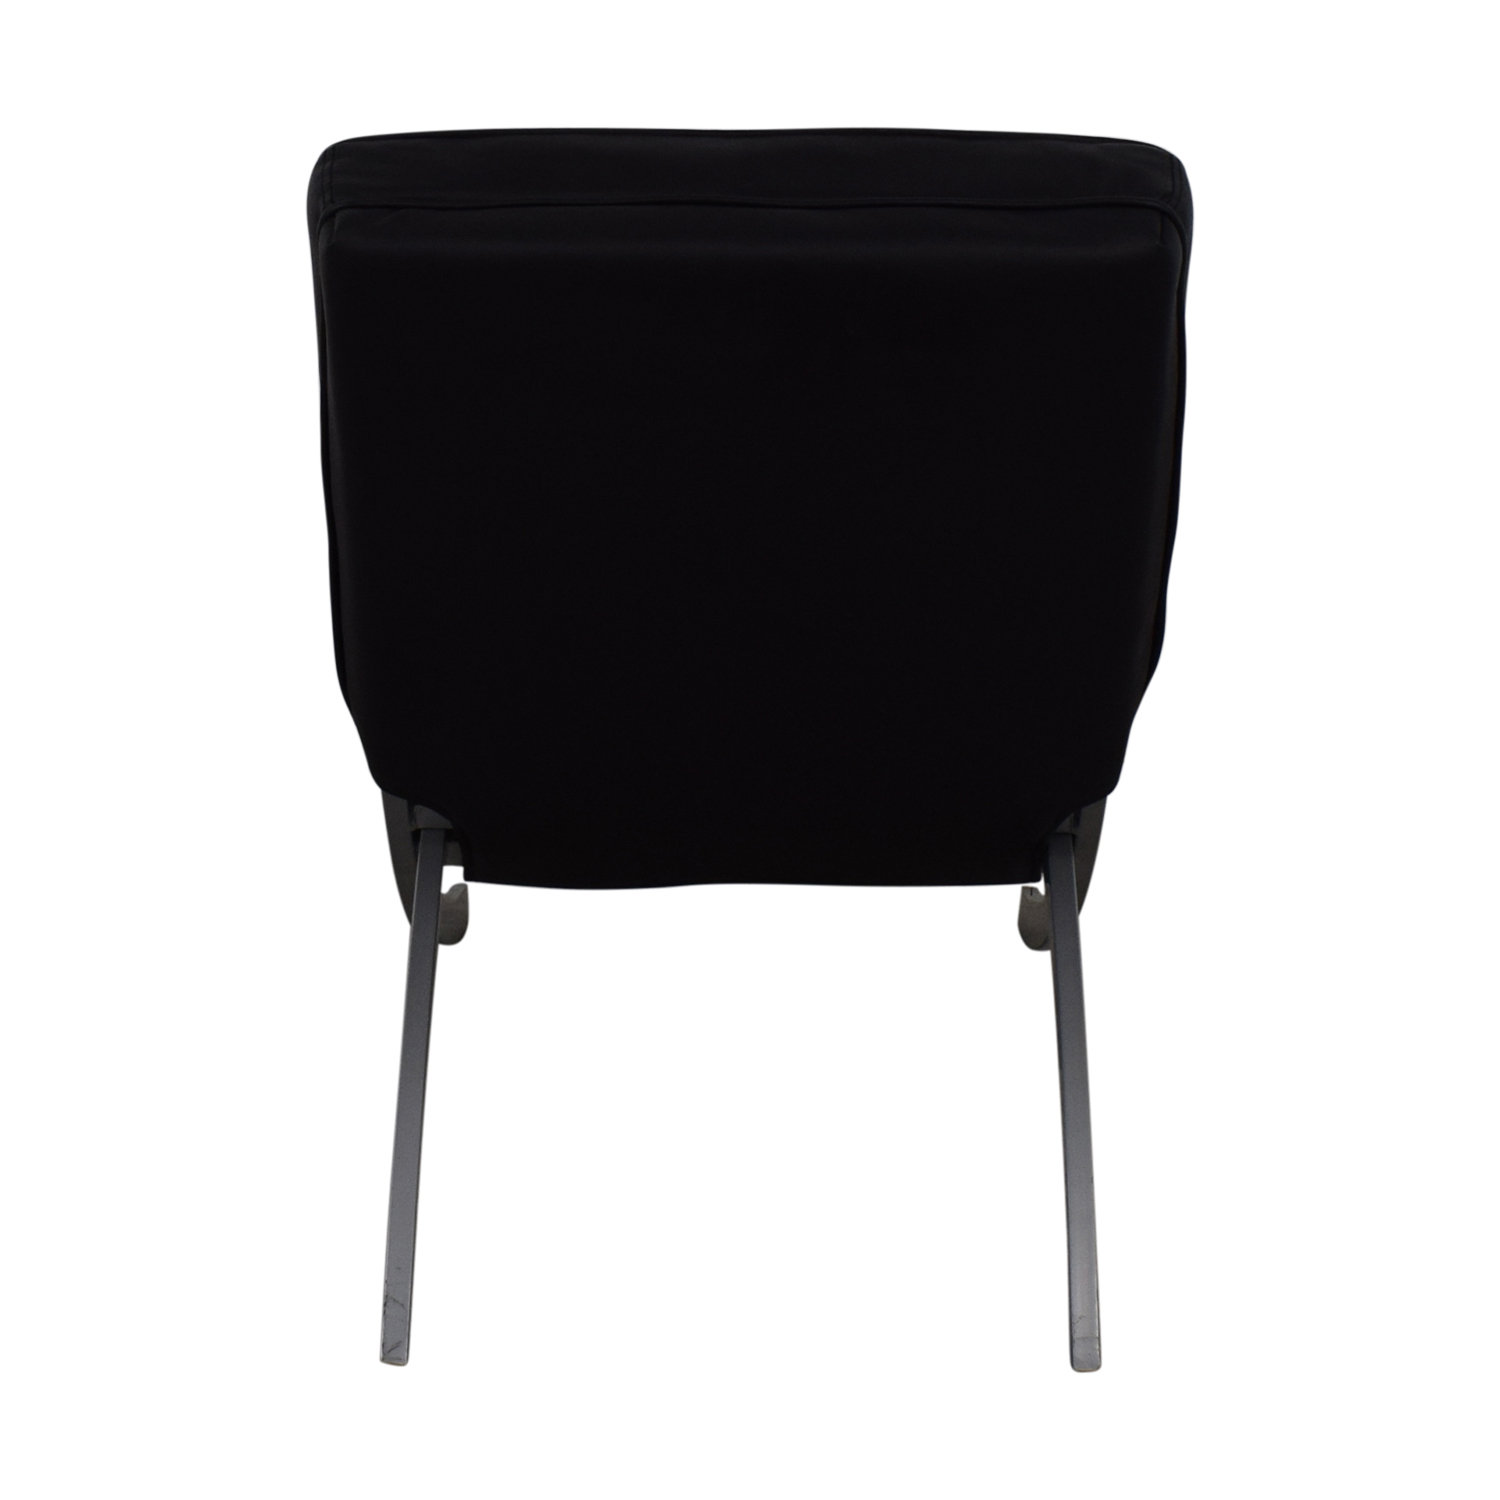 Raymour & Flanigan Raymour & Flanigan Black Accent Chair for sale